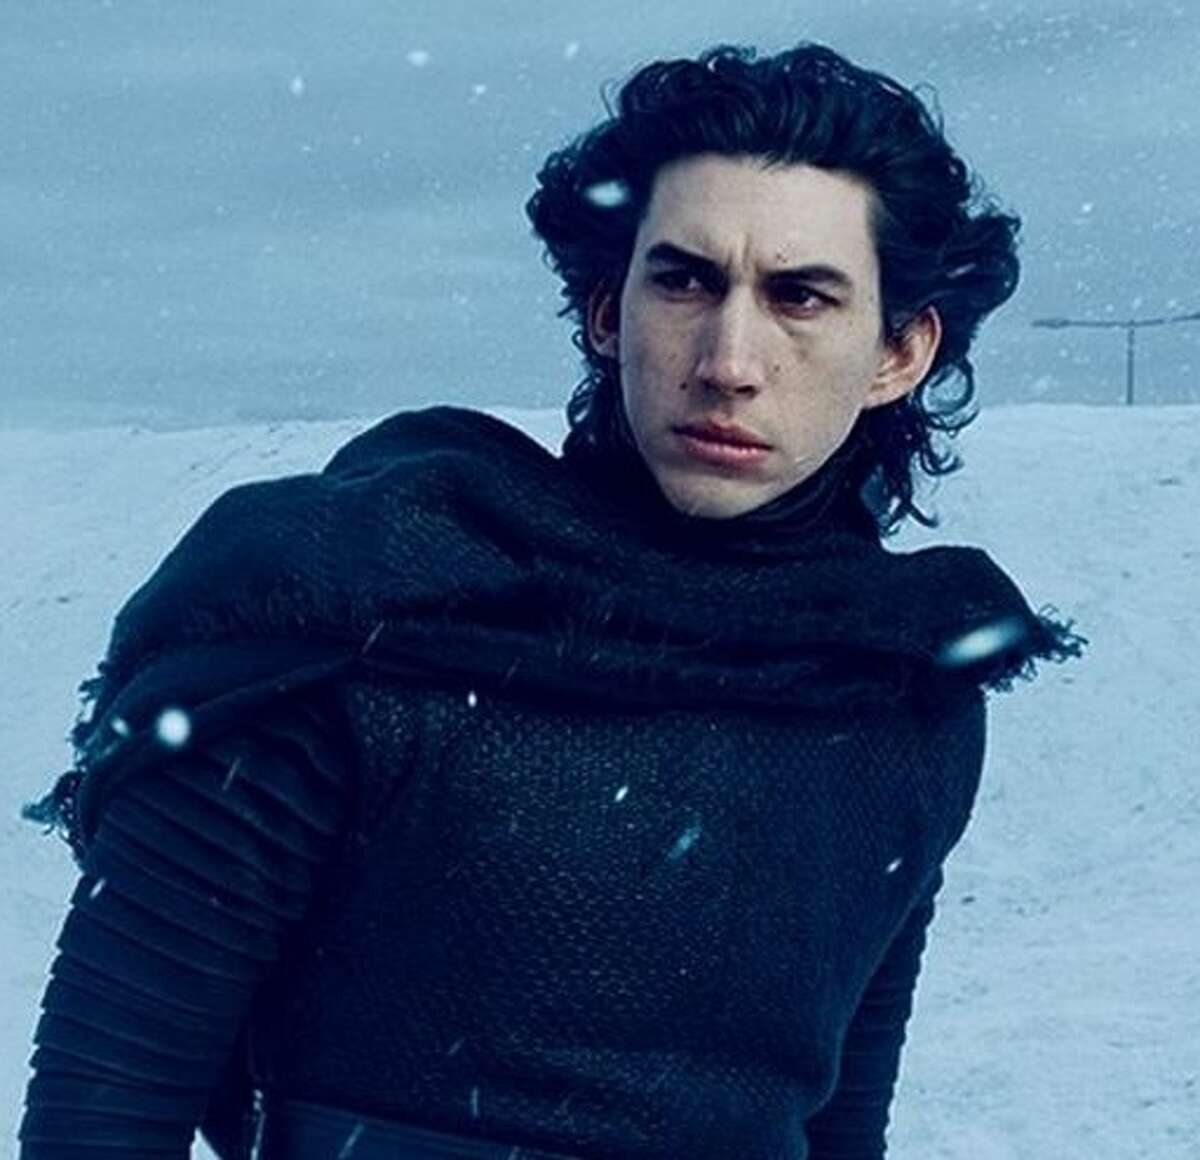 """The """"Emo Kylo Ren"""" parody account describes everything we thought of Adam Driver's portrayal of Kylo Ren."""